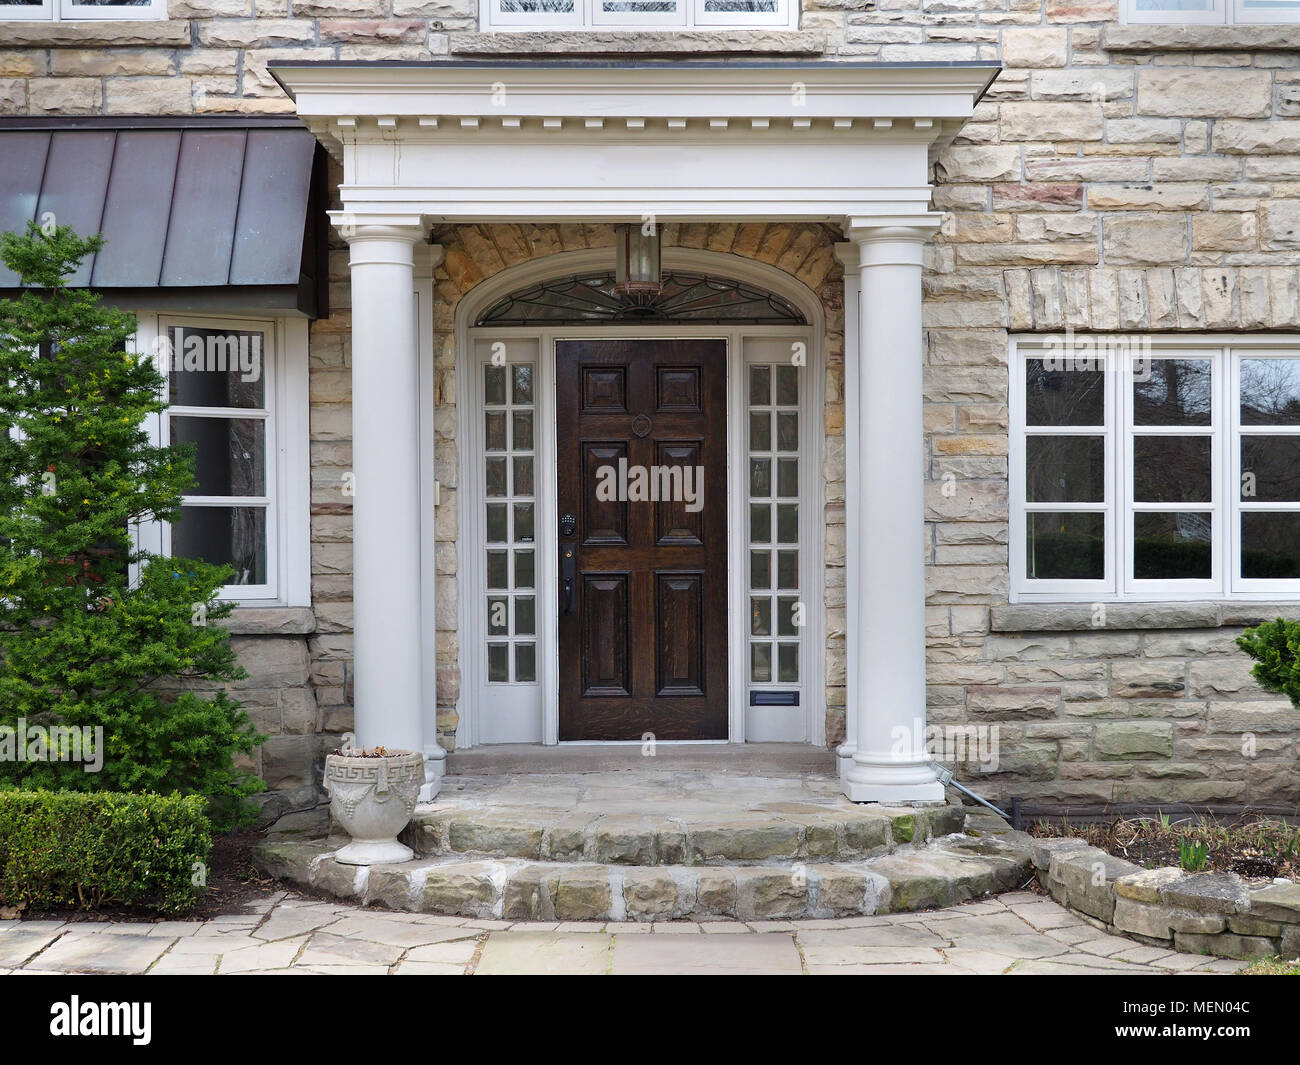 house front door with portico entrance & house front door with portico entrance Stock Photo: 181169980 - Alamy